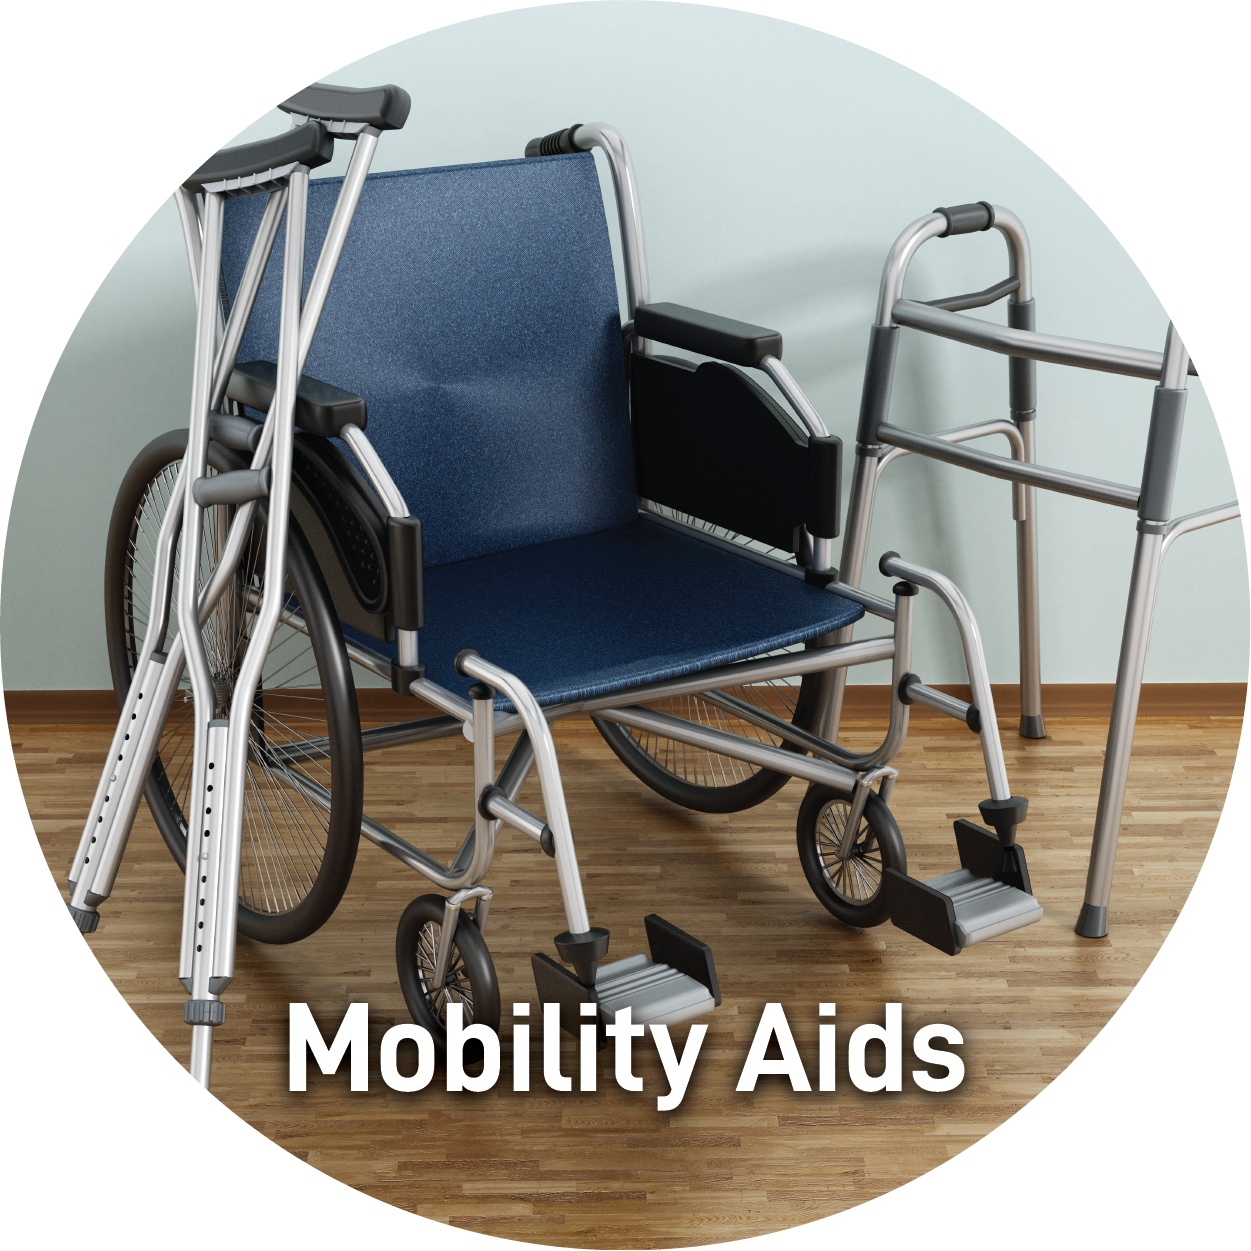 Mobility Aids Wheel Chairs Crutches